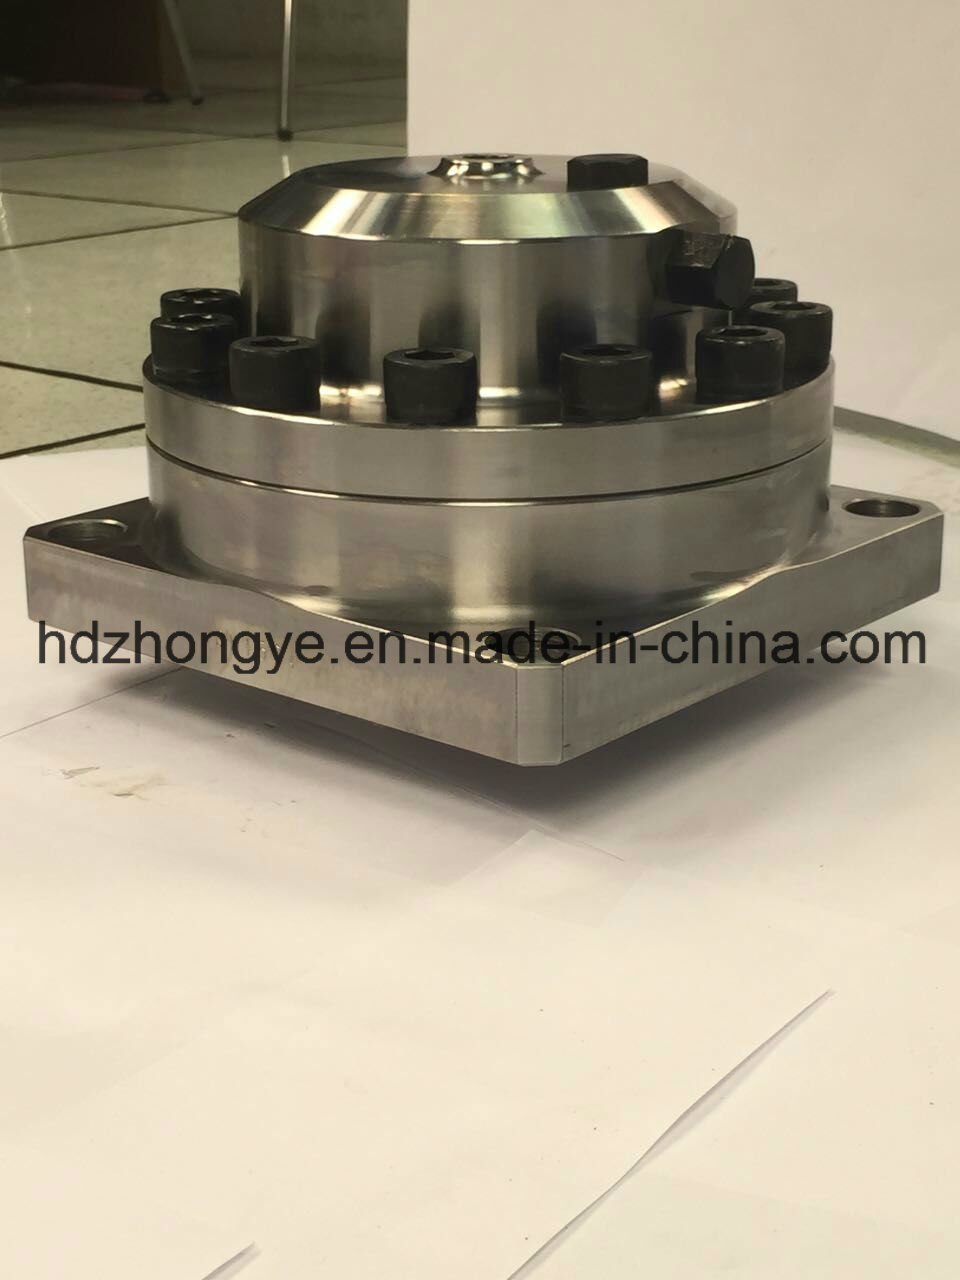 Hb 30g Accumulator for Hydraulic Breaker Parts